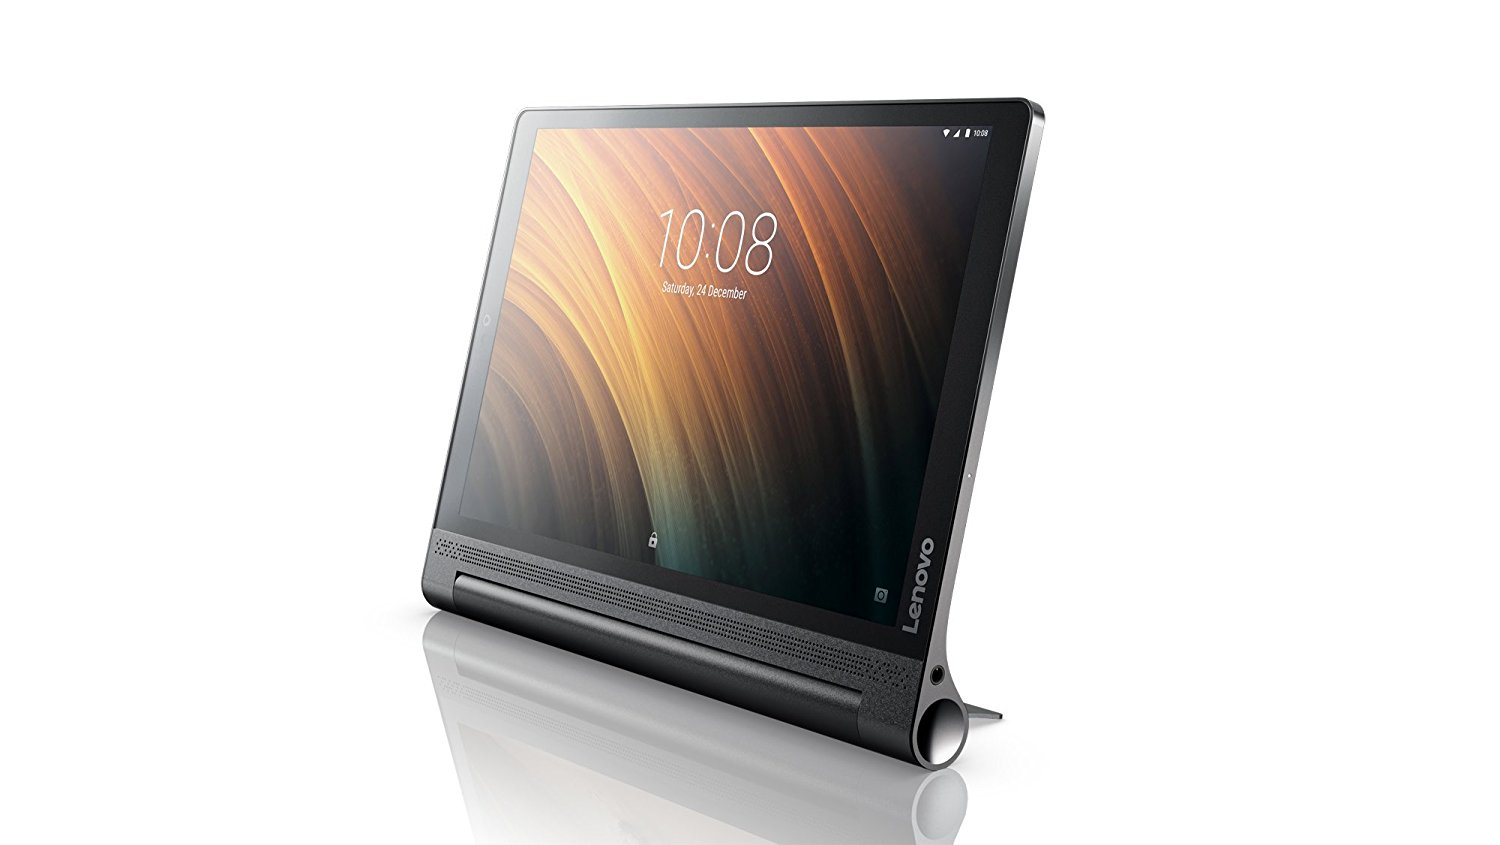 Lenovo ZA1N0007US Yoga Tab 3 Plus QHD 10.1 inch Android Tablet (Qualcomm Snapdragon 652, 3GB RAM, 32GB SSD,Android 6.0), Black